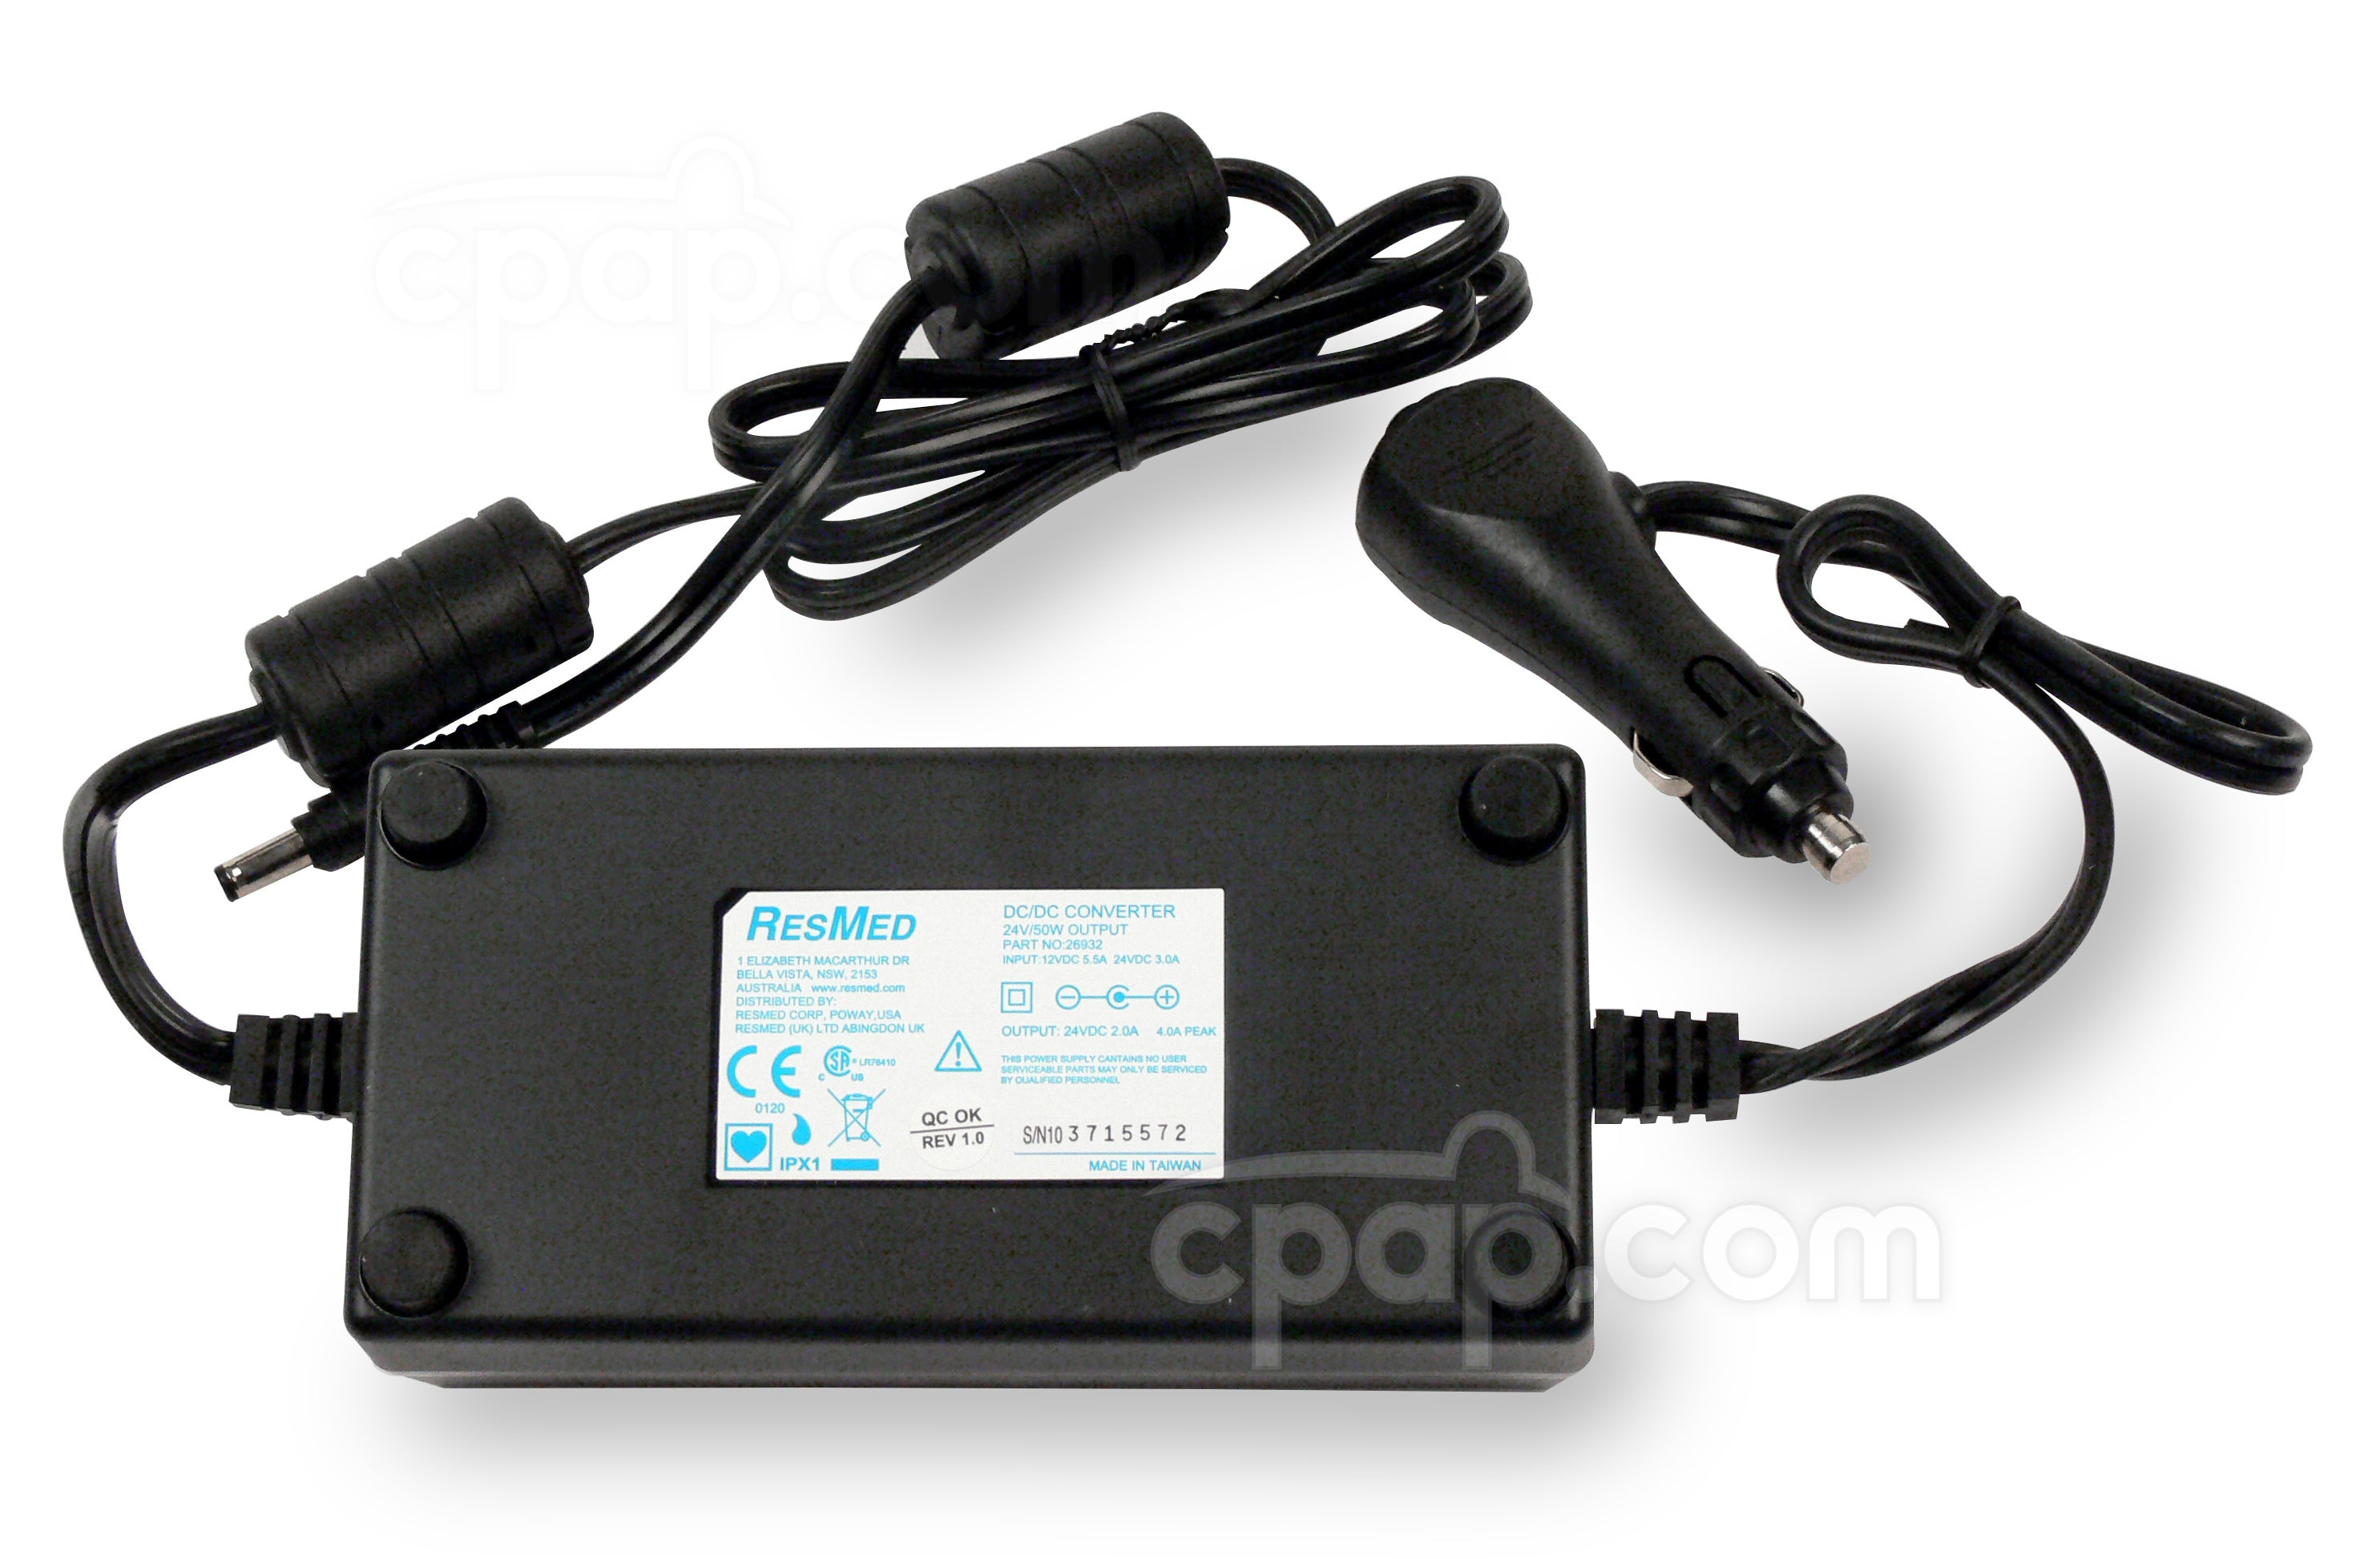 DC-24 Converter For ResMed VPAP Auto 25 and VPAP ST Machines